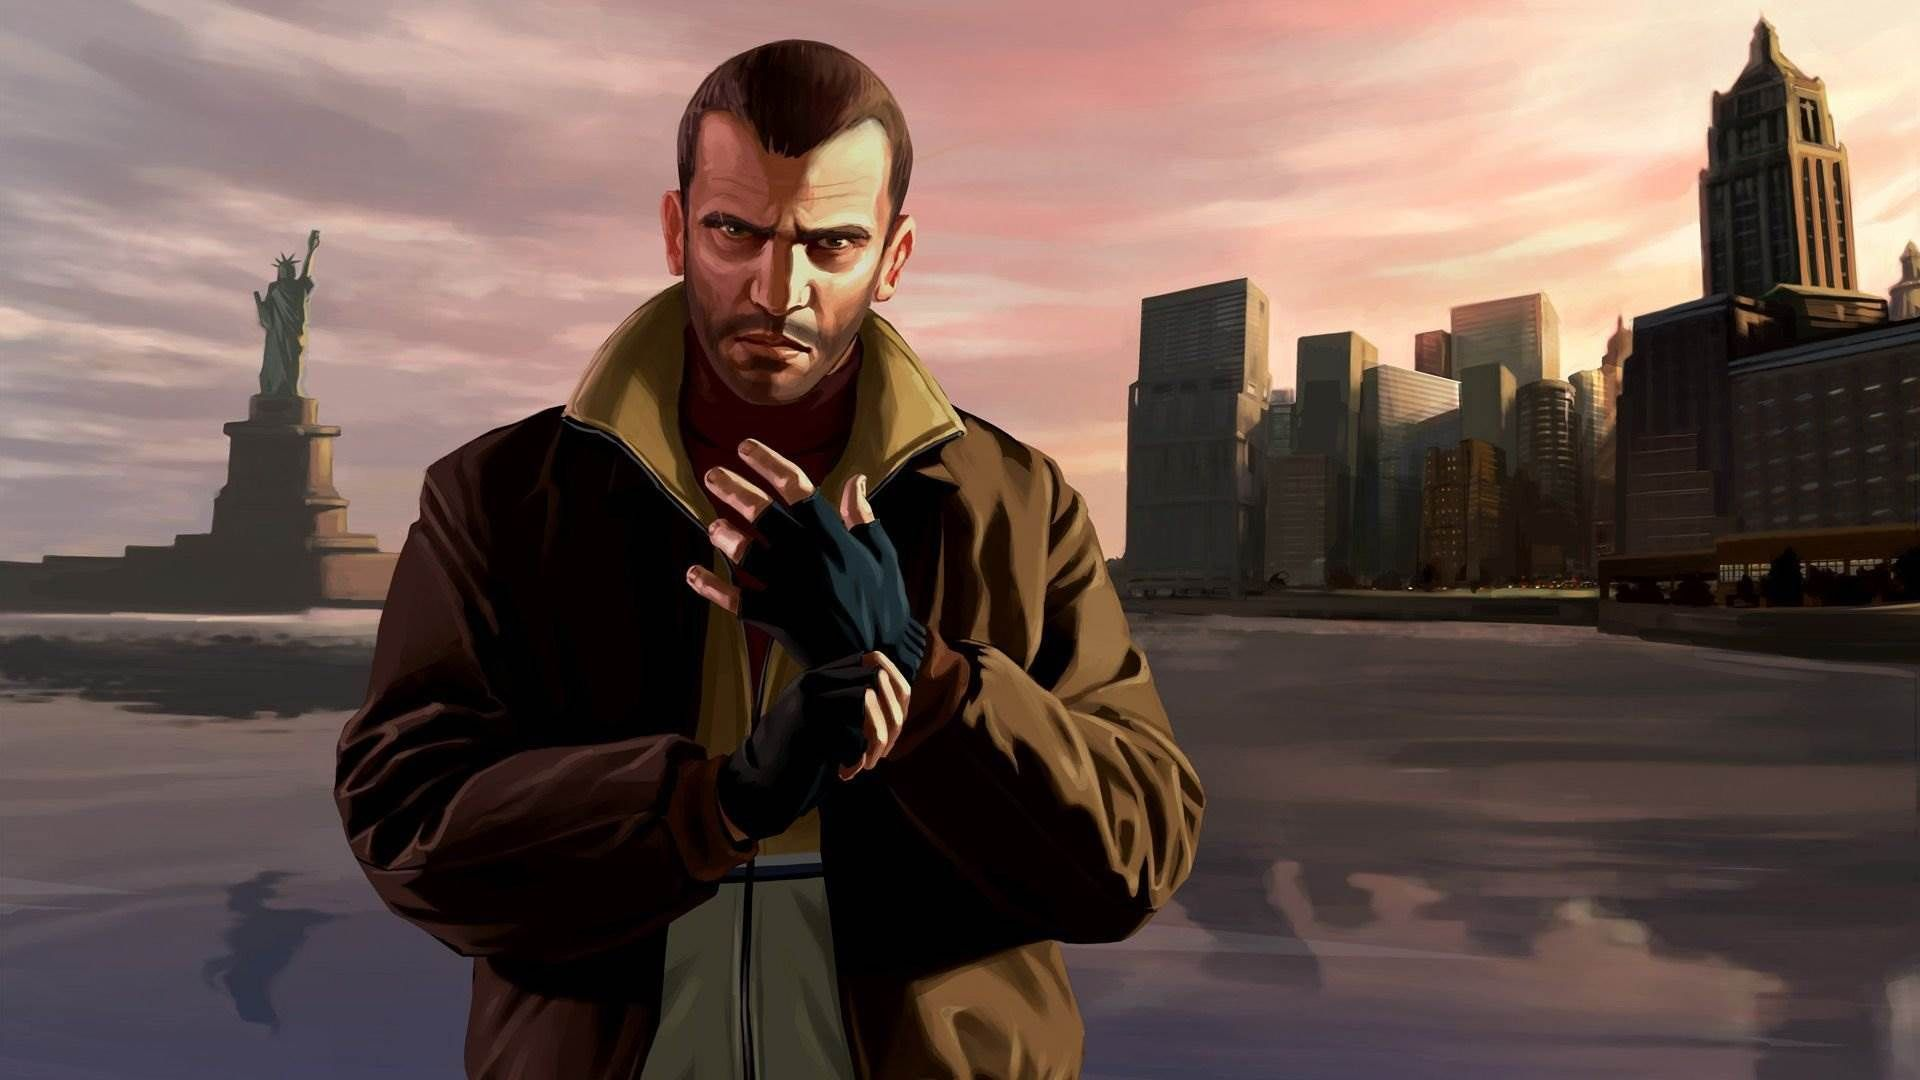 Gta Iv Wallpapers For Desktop V Gta Iv Collection X Gta Iv Adorable Wallpapers